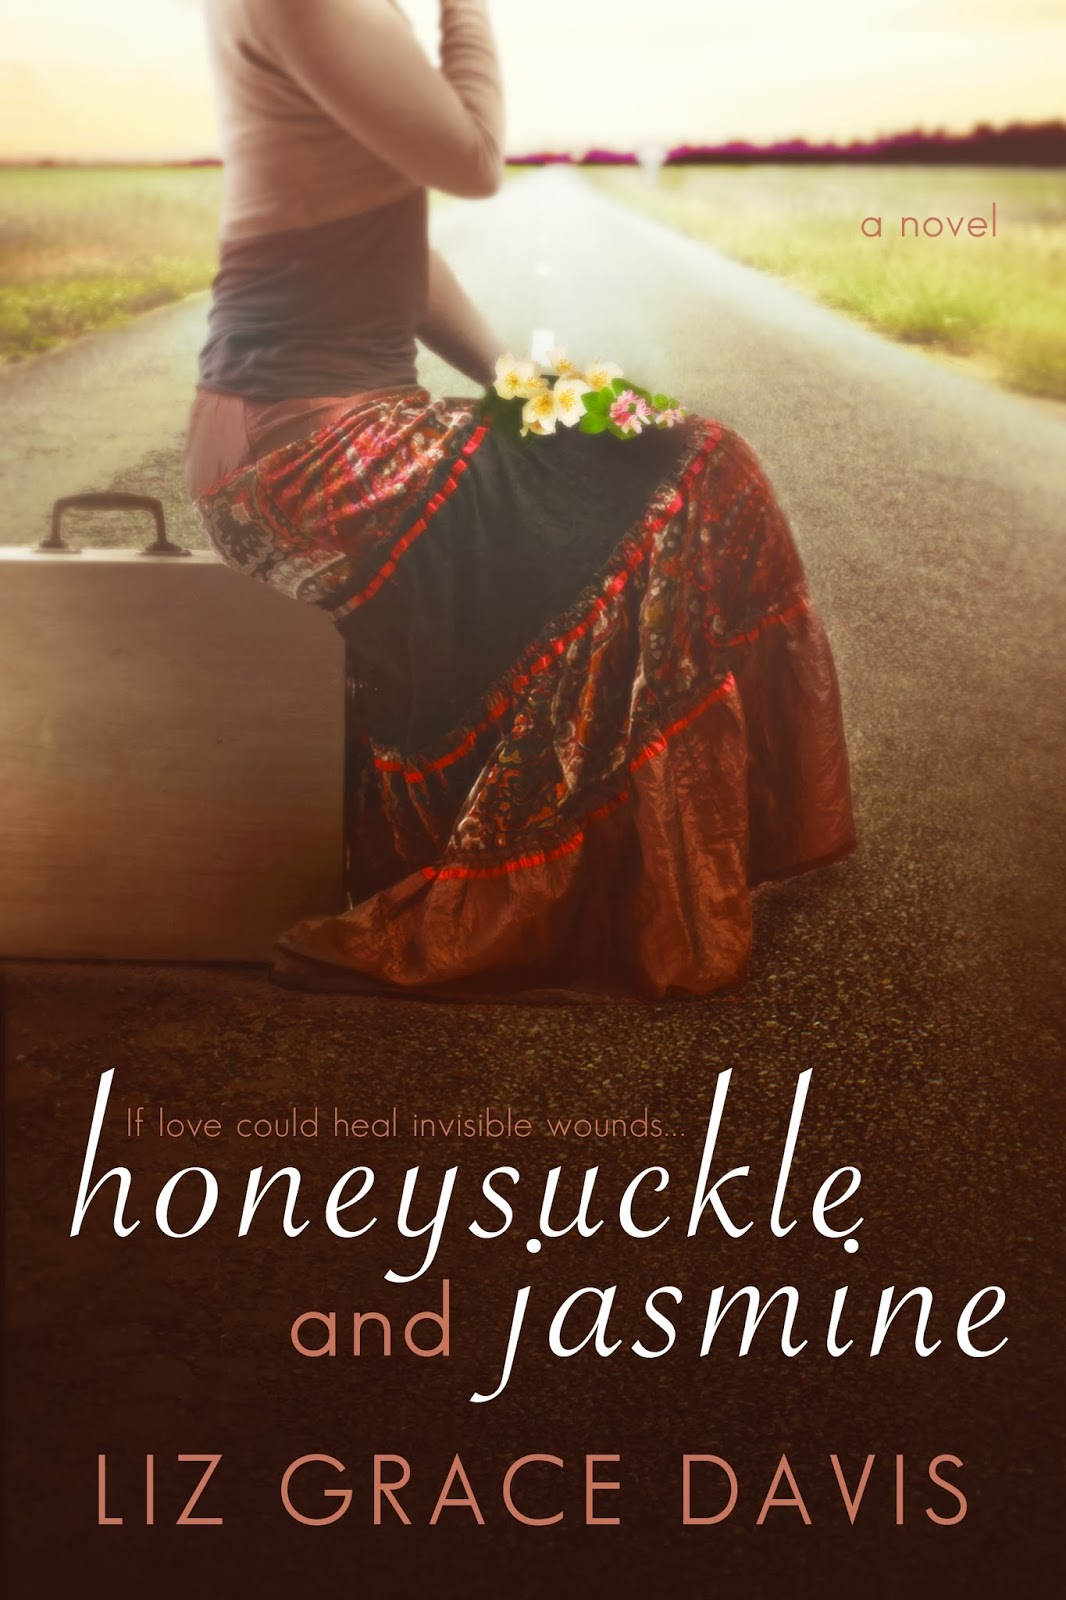 Honeysuckle and Jasmine by Liz Grace Davis